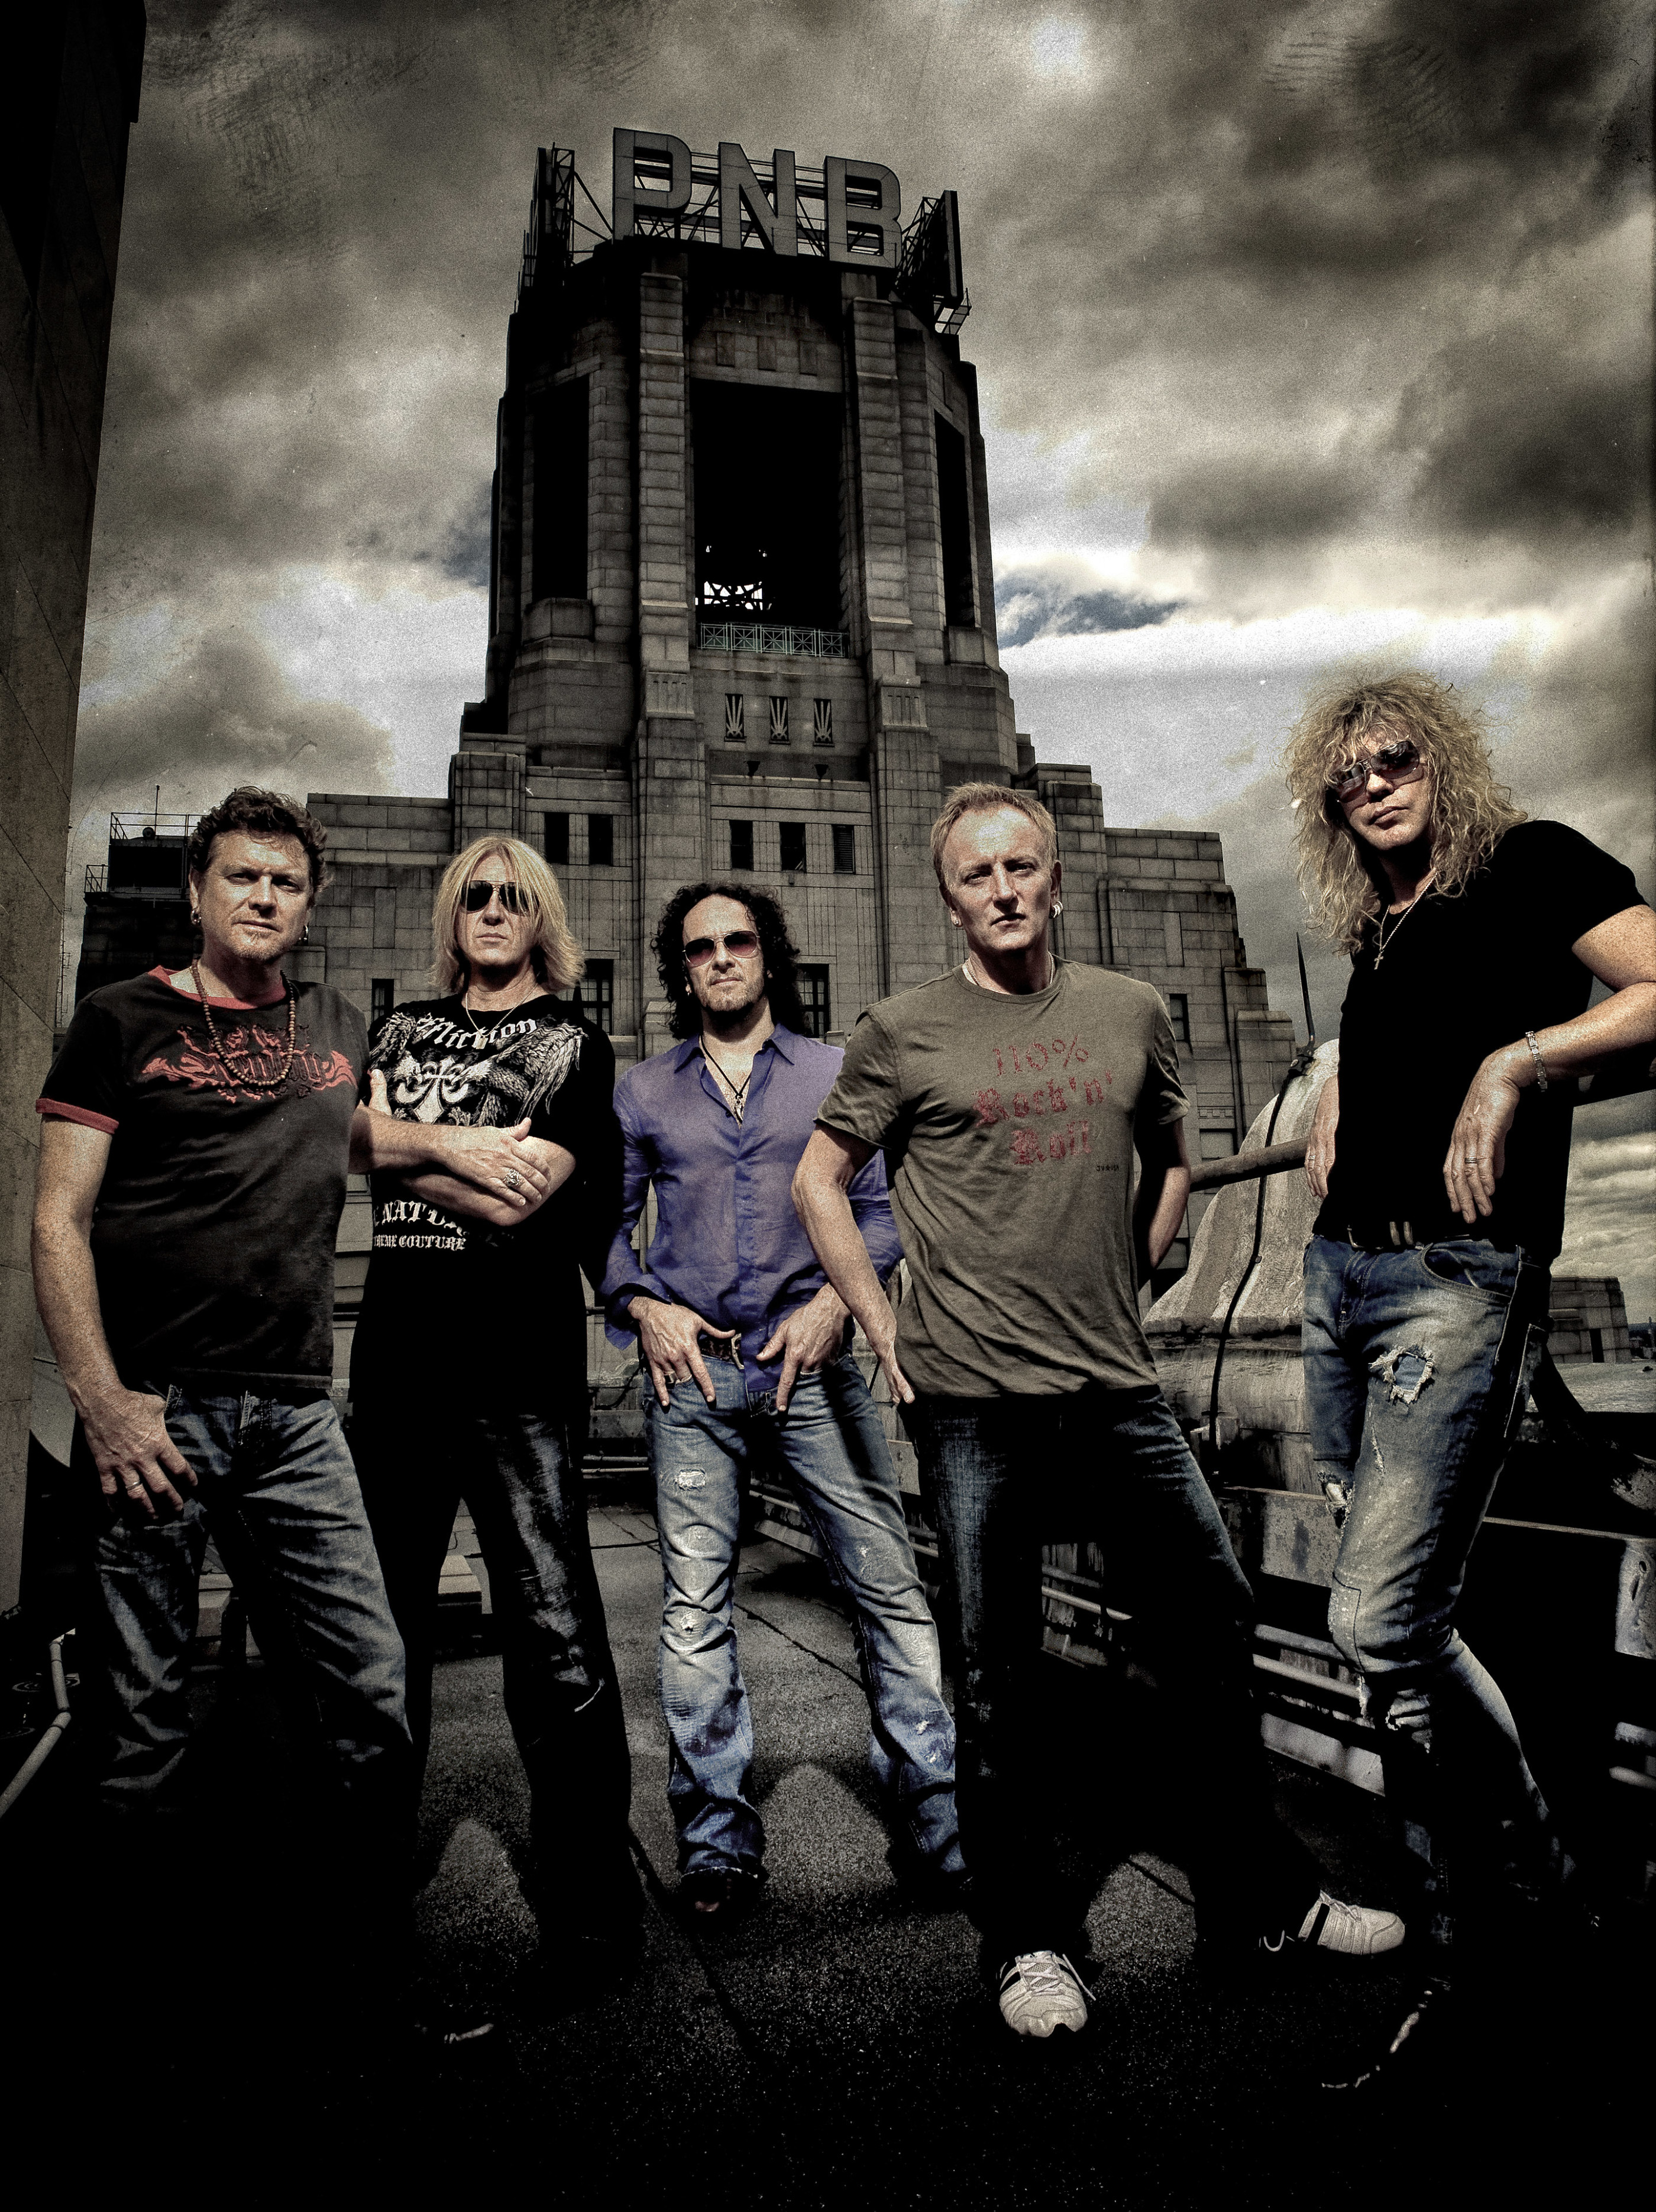 Def Leppard Rooftop Photoshoot 2009